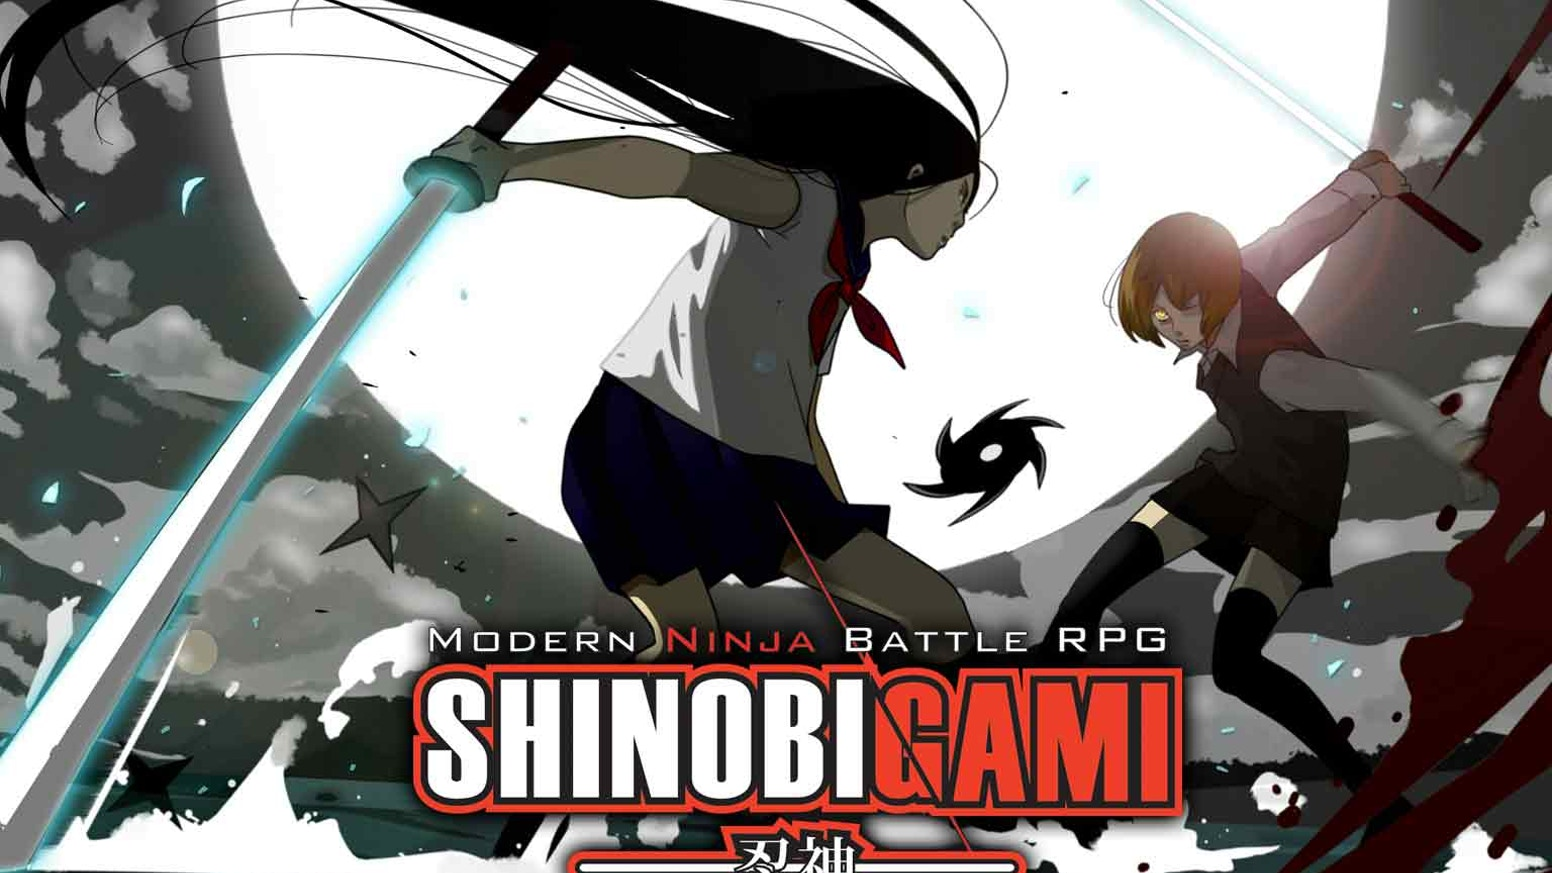 Shinobigami is an original Japanese story-focused tabletop RPG of drama, action, tactics and frenemies, set in a modern ninja cold war.